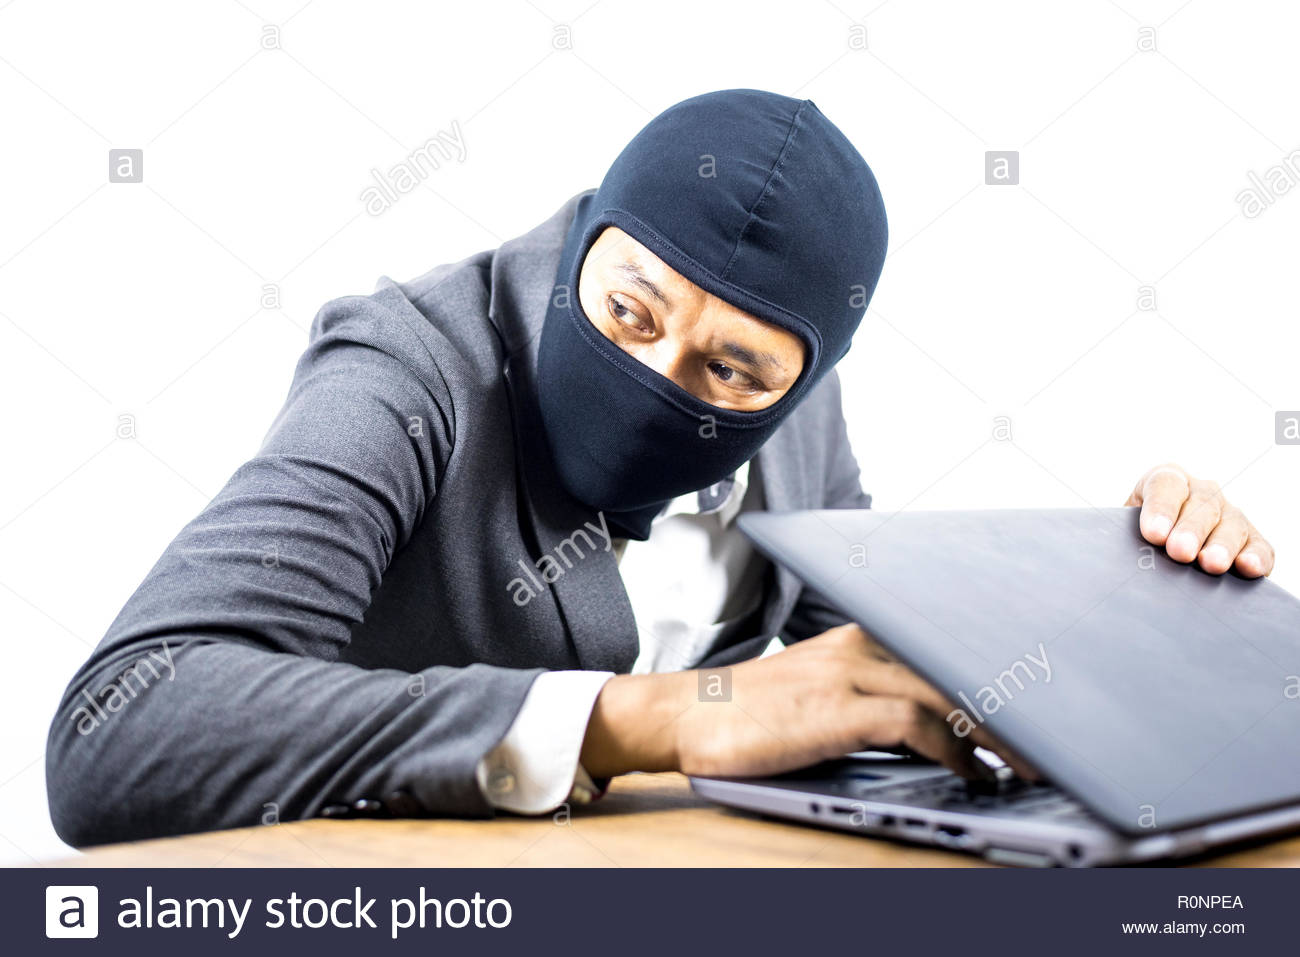 Data theft, Computer hacker stealing data and personal identity information off a laptop computer, Data center security policy - Stock Image